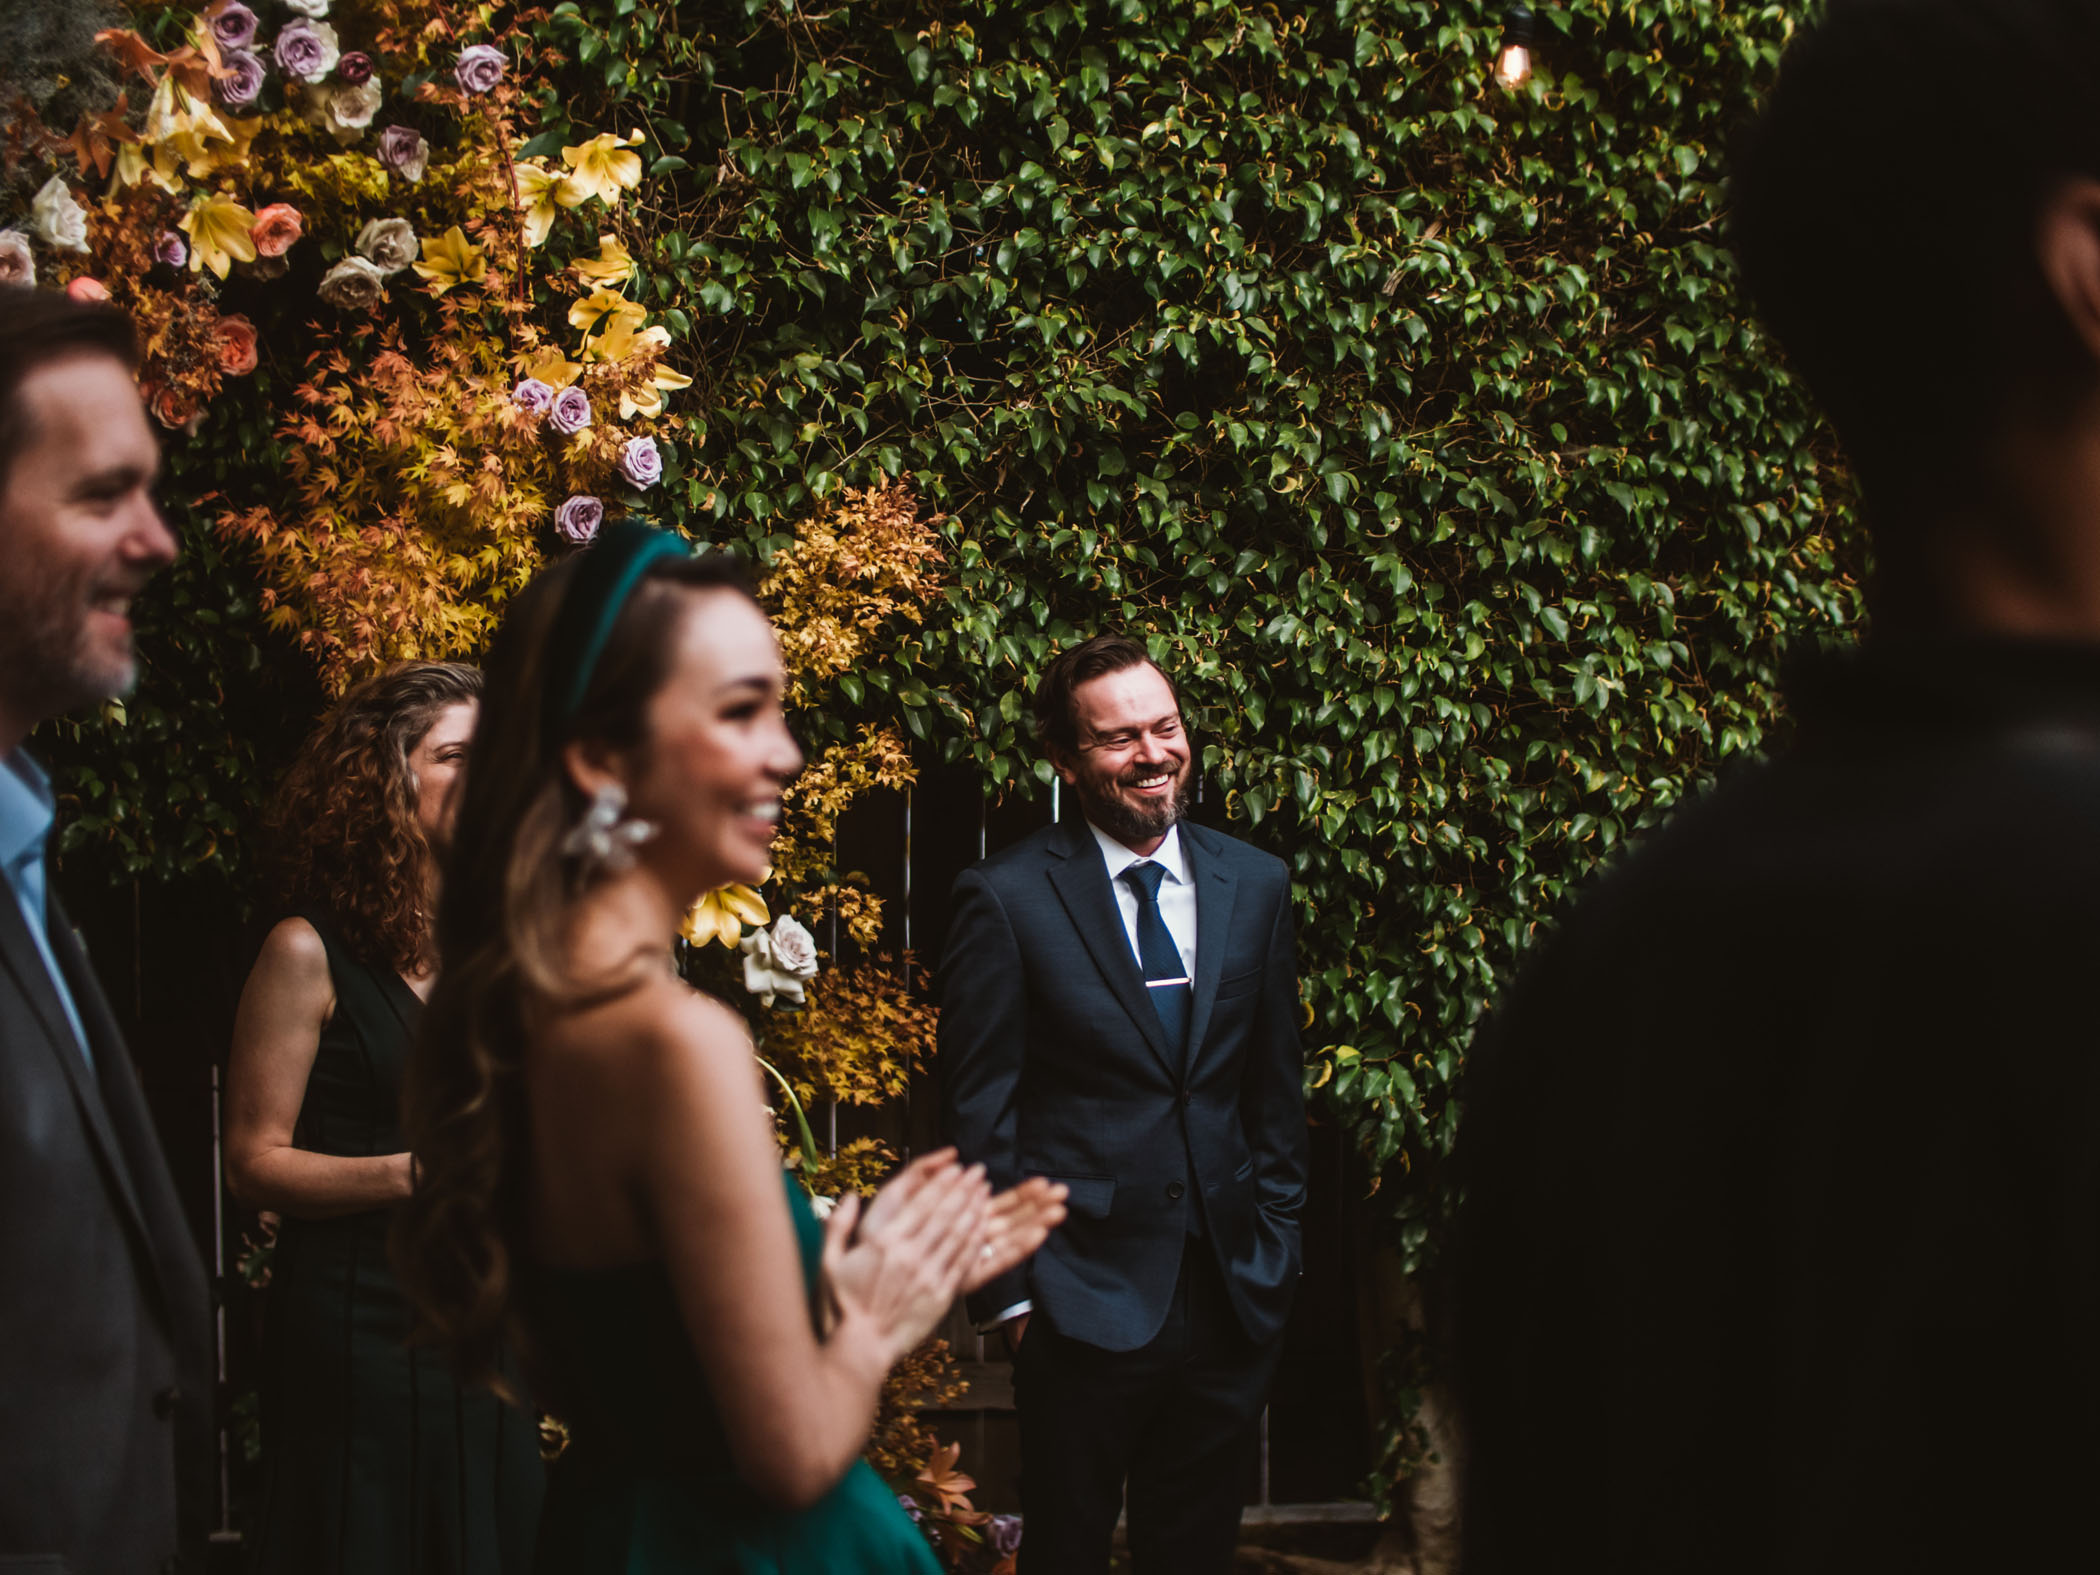 Husband smiling as he sees his bride for the first time